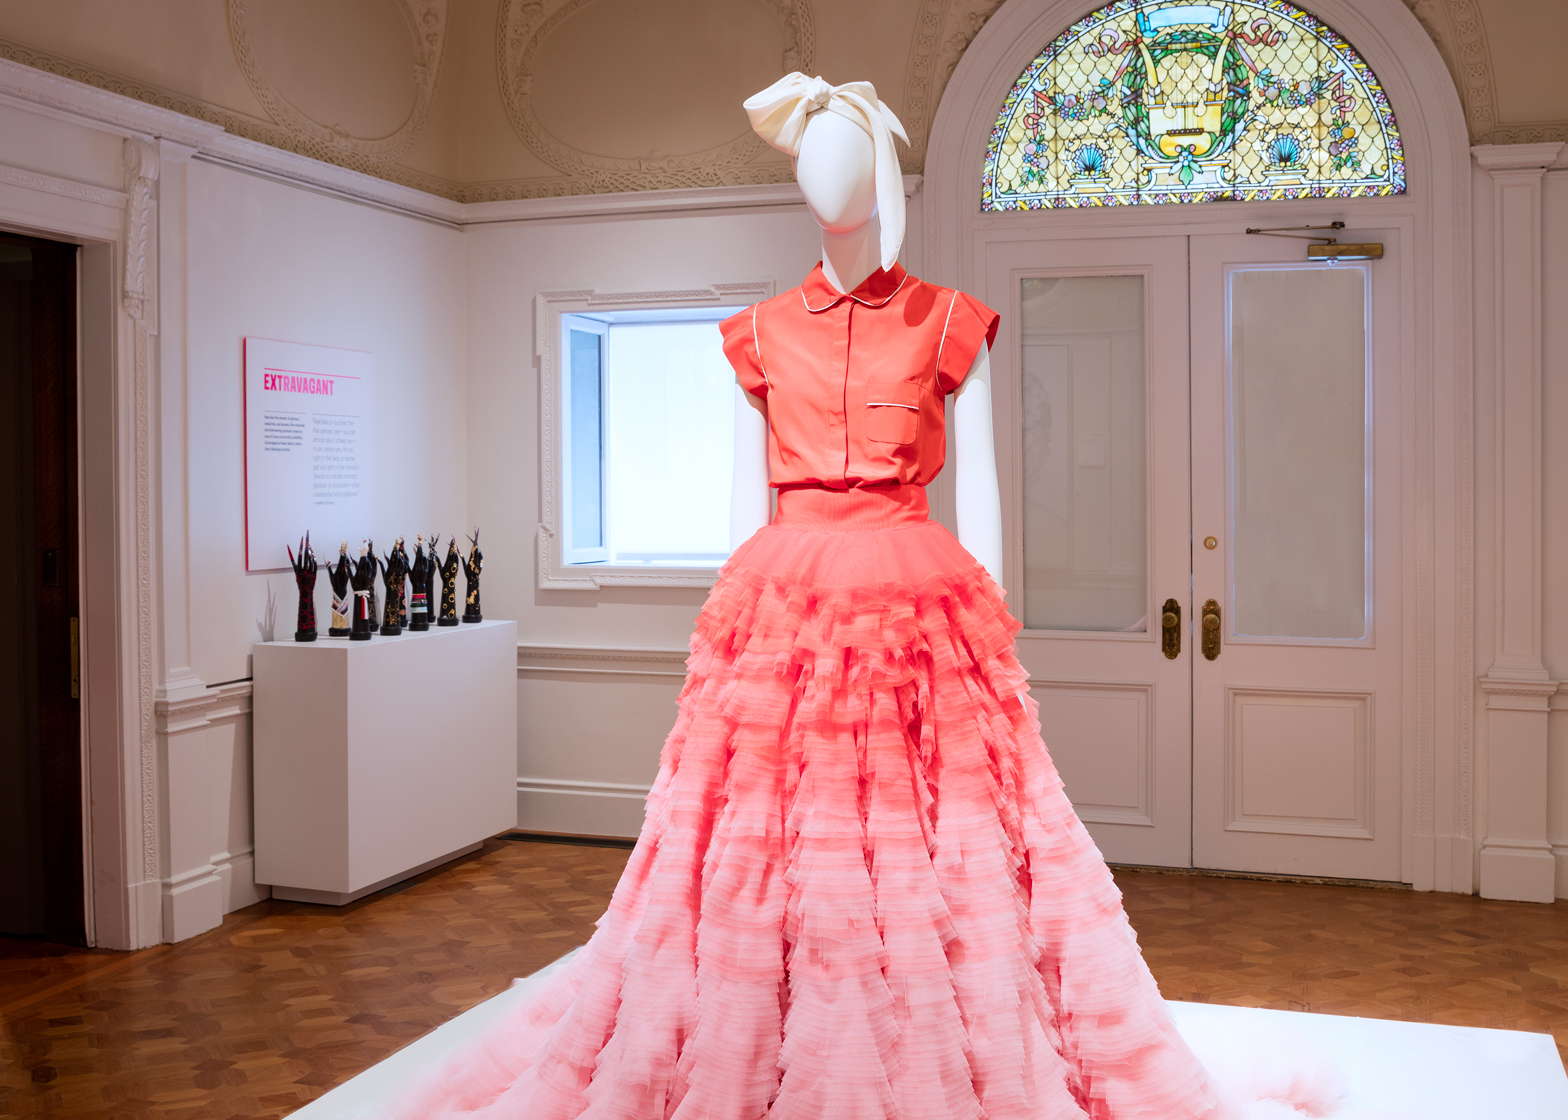 New York's Cooper Hewitt Triennial explores the theme of beauty in design